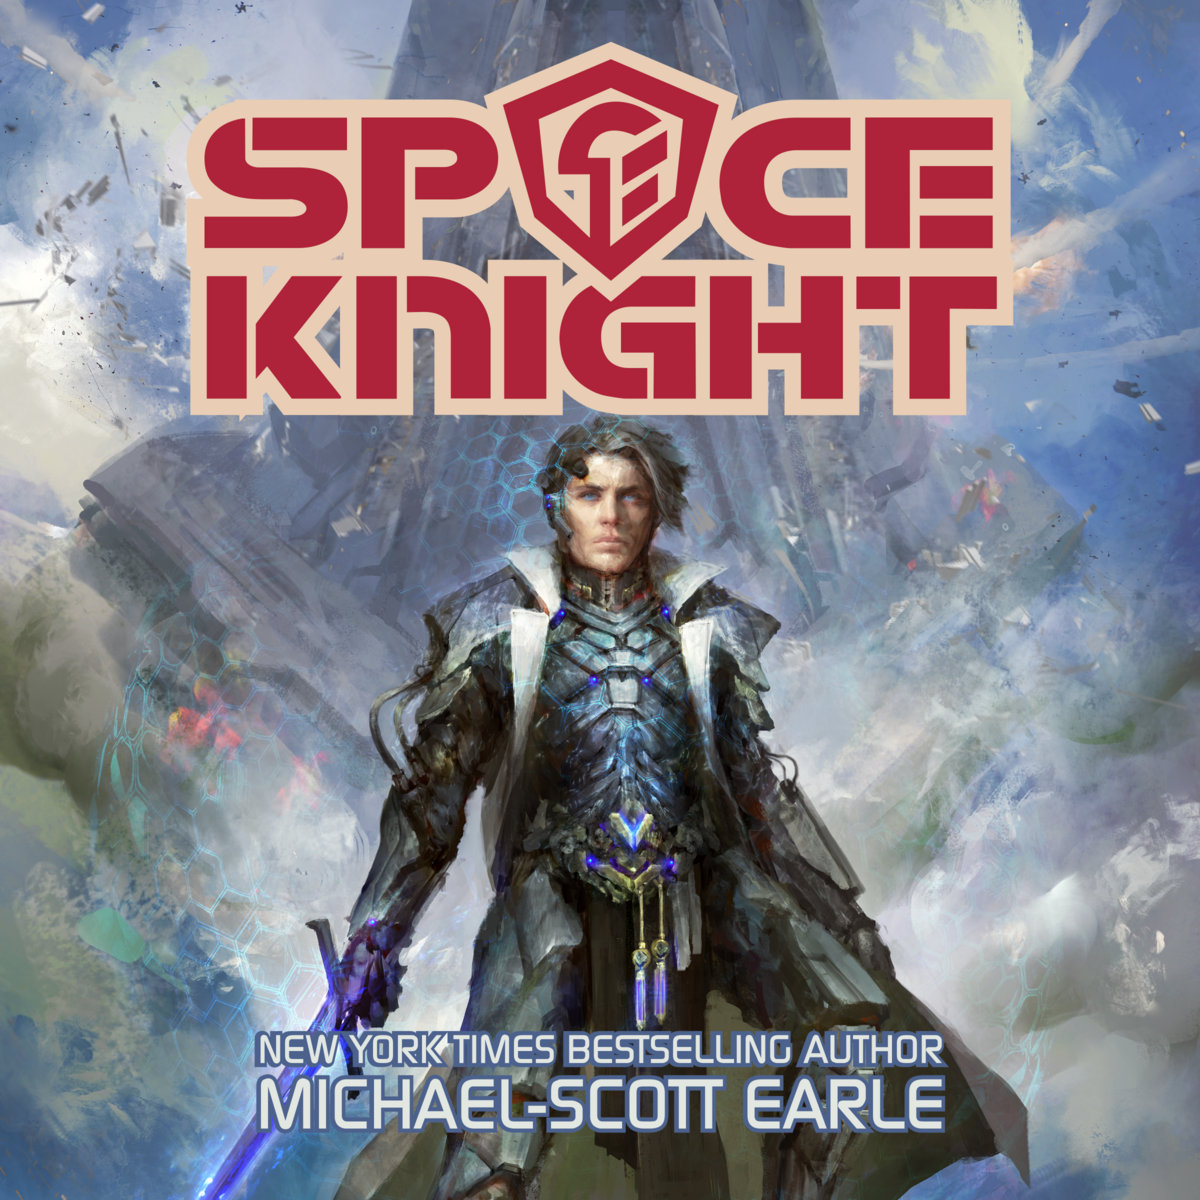 Space Knight Books 1-3 (Bandcamp Version)- Michael Scott Earle  - Michael Scott Earle